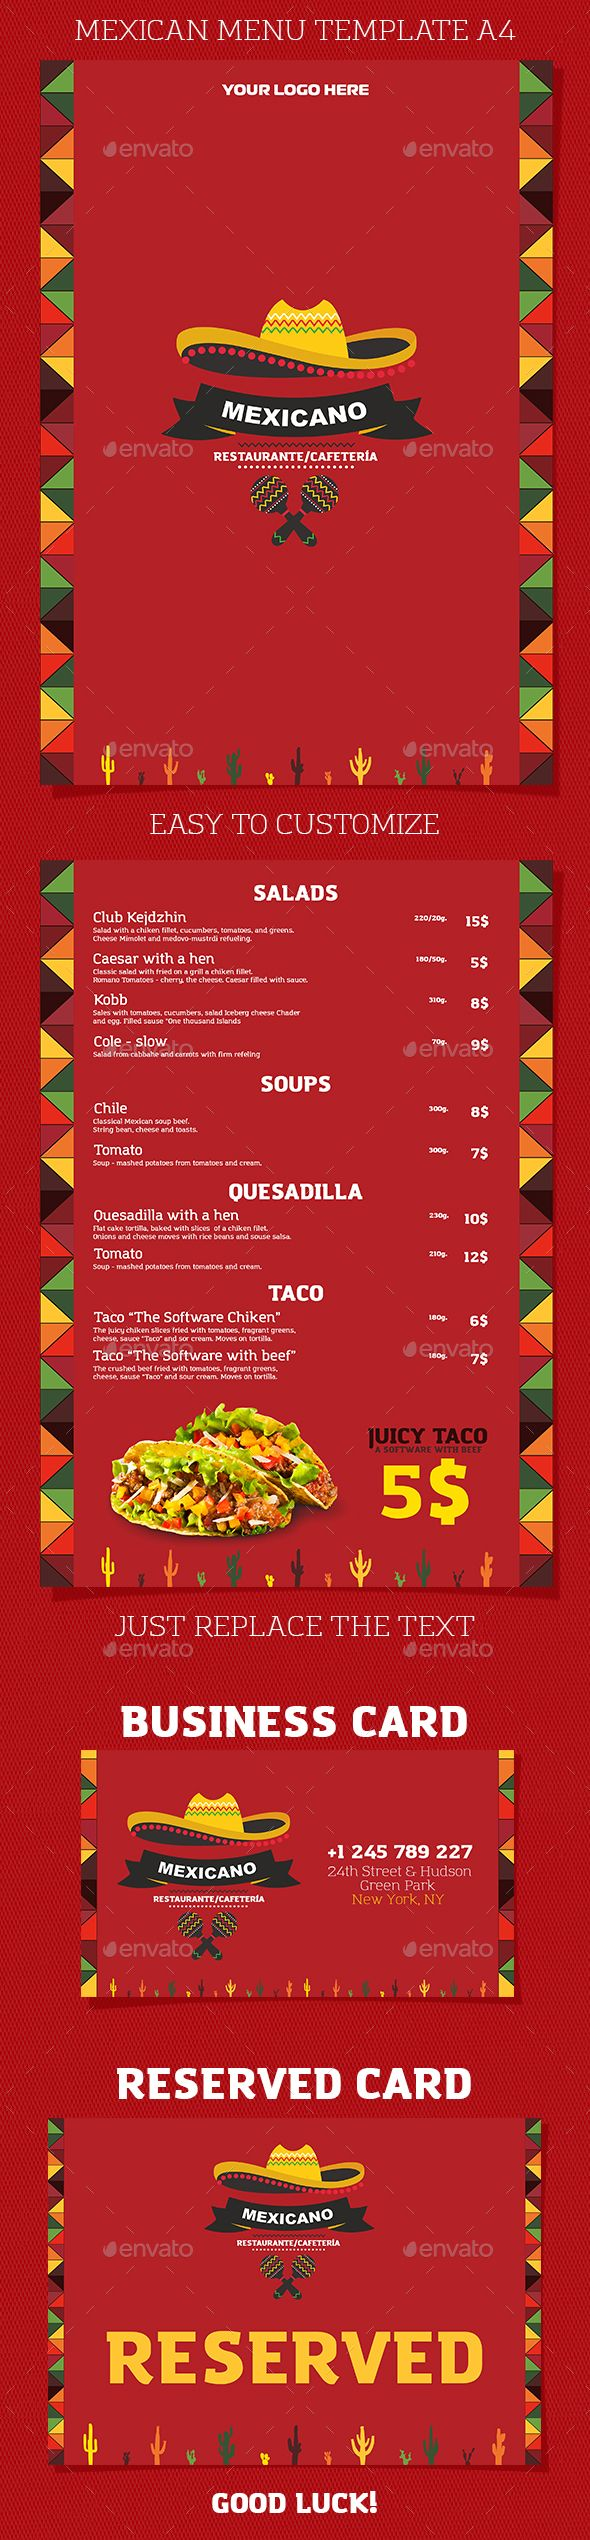 mexican menu template